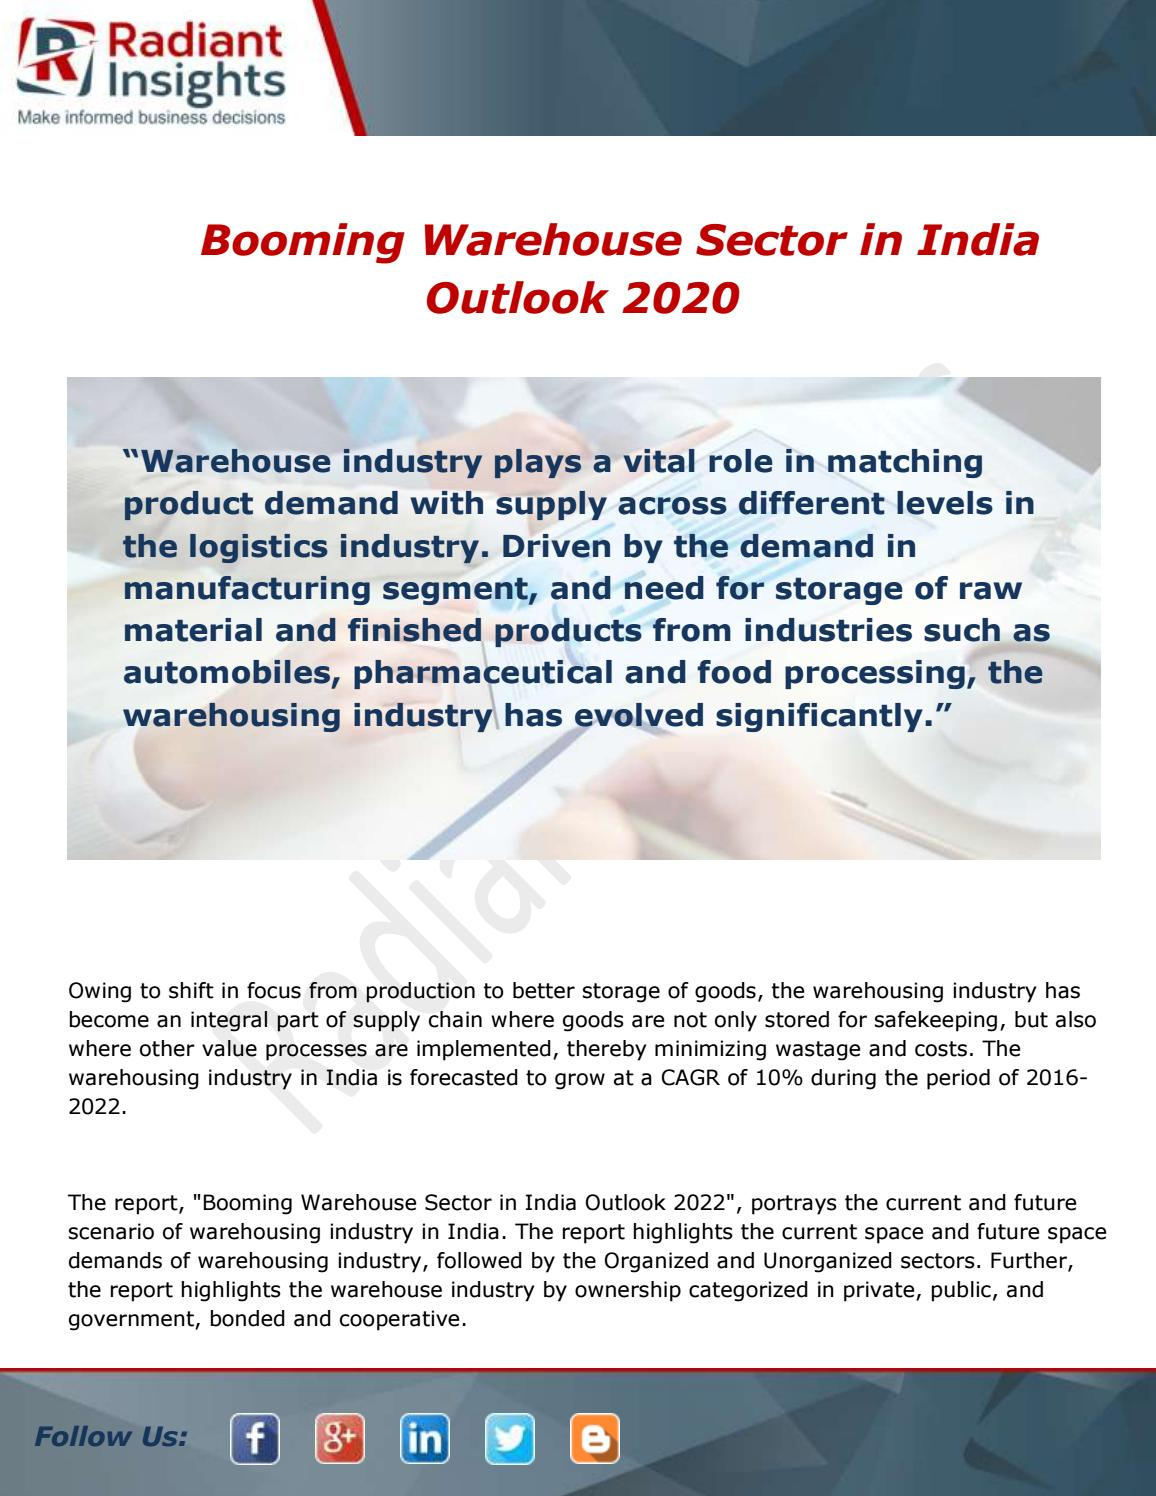 Booming Warehouse Sector in India Market Overview and Trends